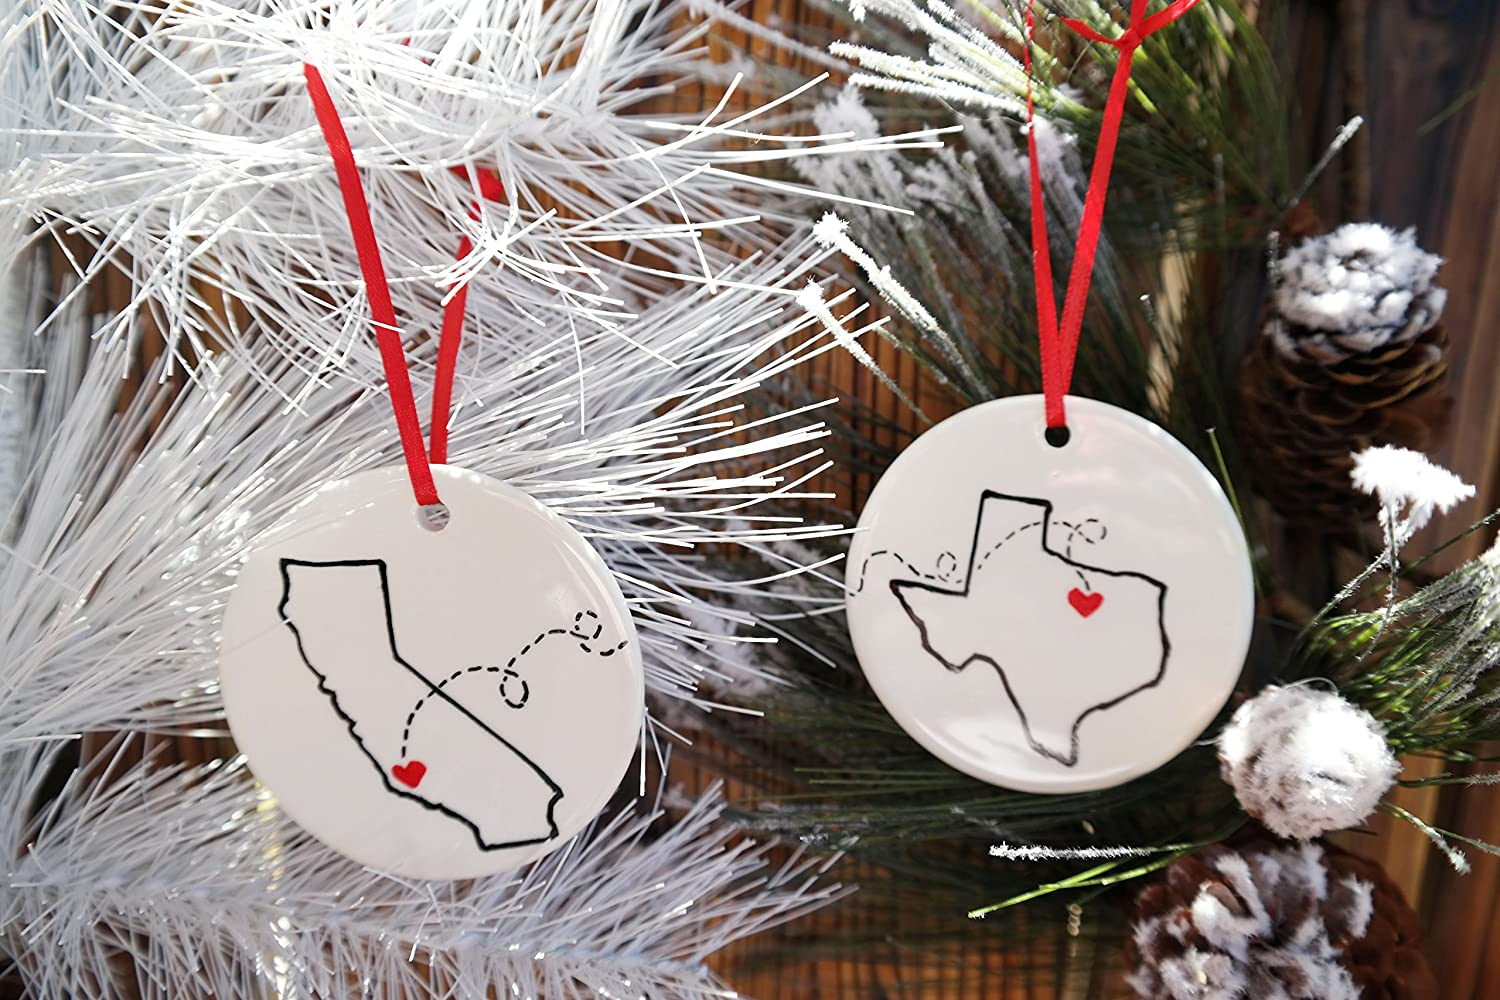 Amazon Com State To State Christmas Ornament Christmas Gift For Best Friend Long Distance Relationship Christmas Gift Ideas Personalized Ornament Long Distance Friend Gift Best Friend Gift Handmade